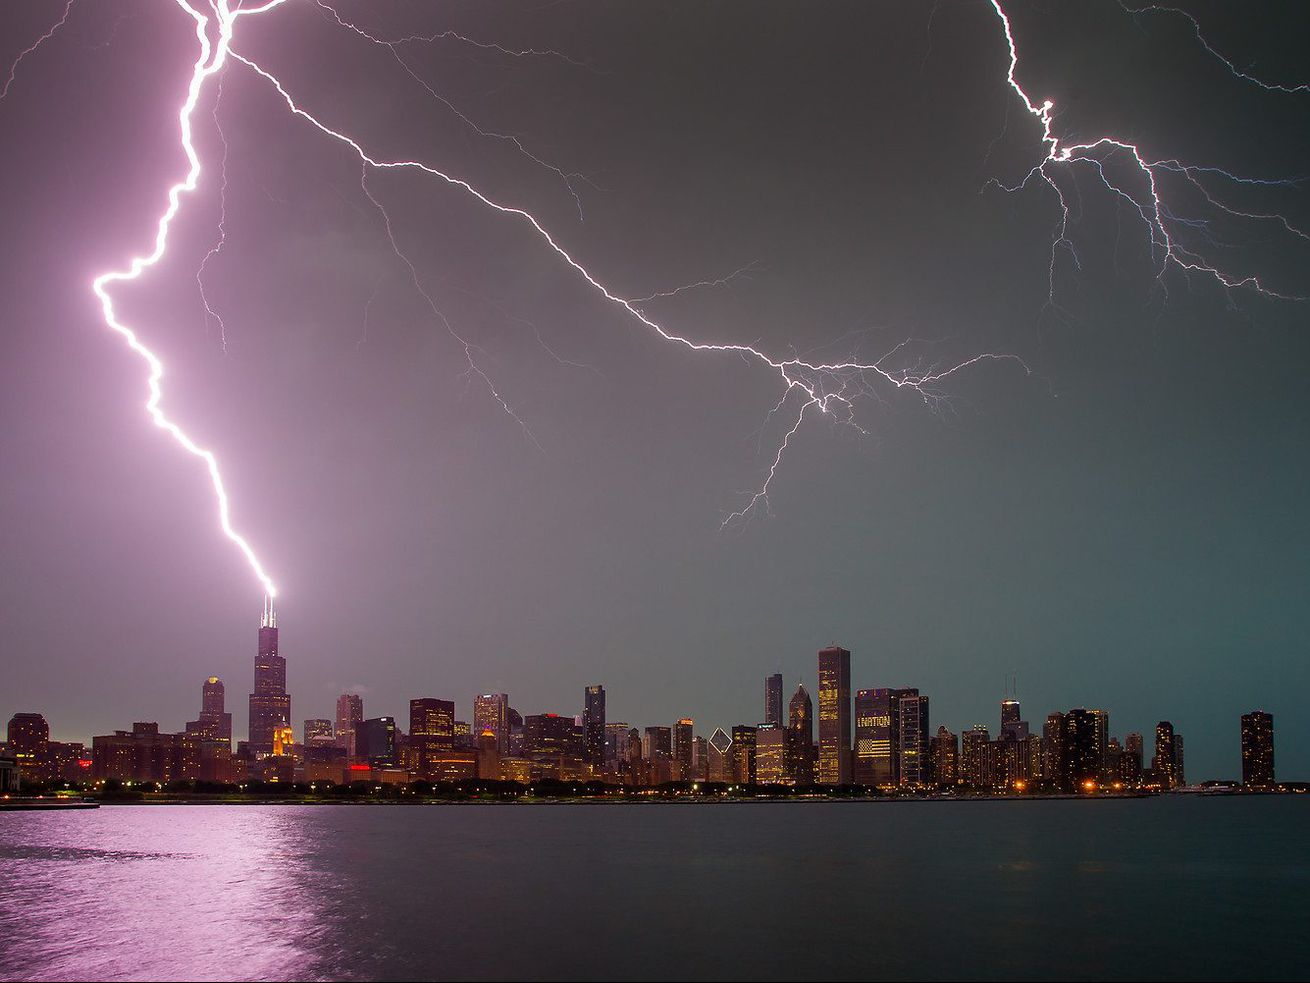 Thunderstorms forecast for Chicago area: weather service